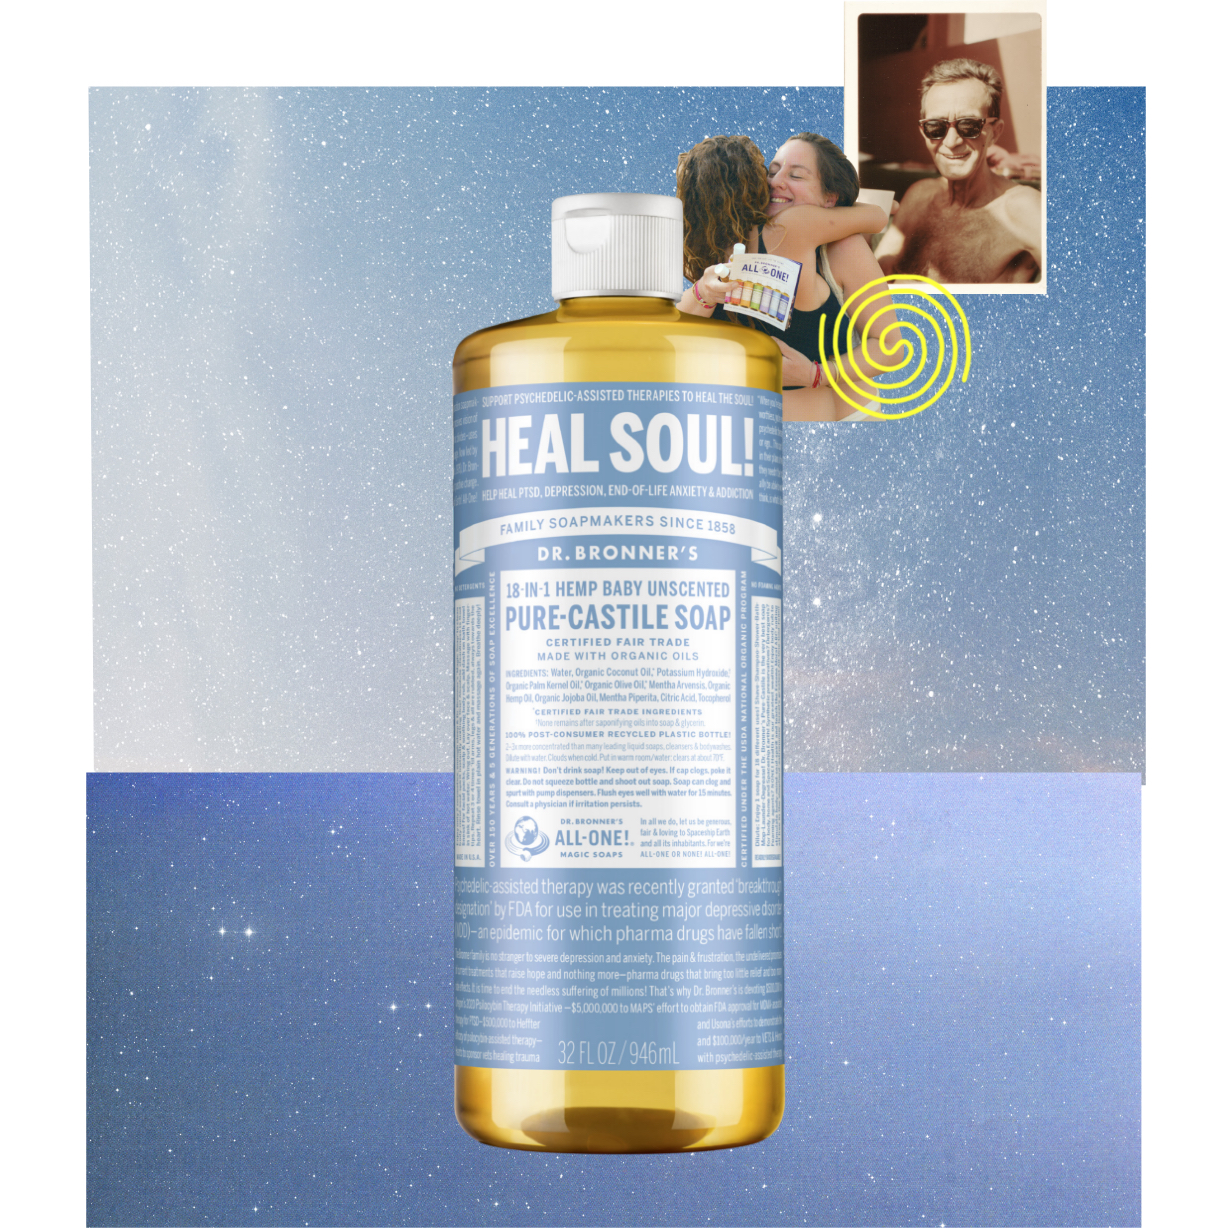 https://www.drbronner.jp/column/all-one/drbronner_all-one_report2020/